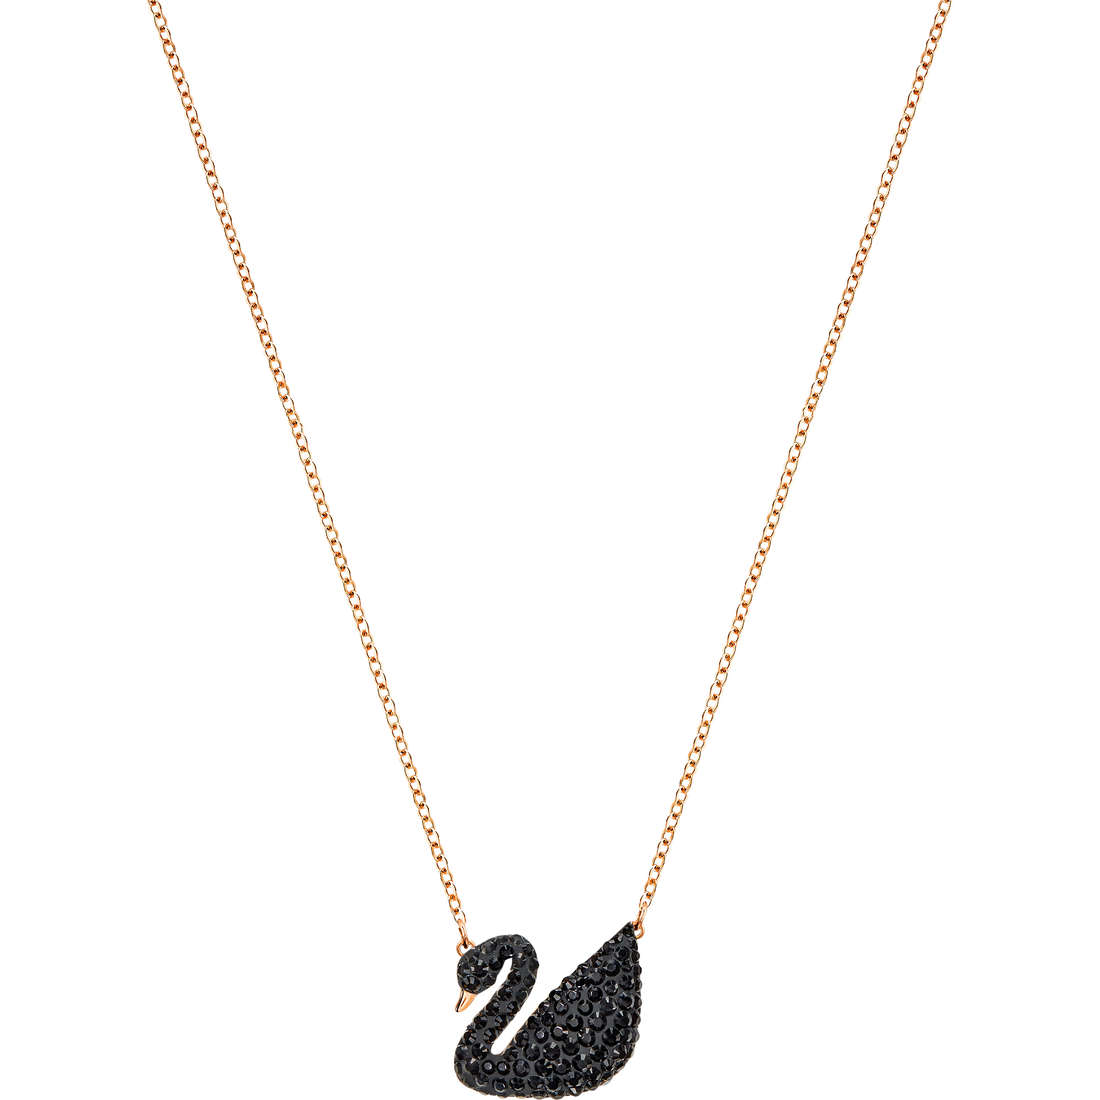 San Francisco 39542 c2748 COLLANA SWAROVSKI ICONIC SWAN - 5204134